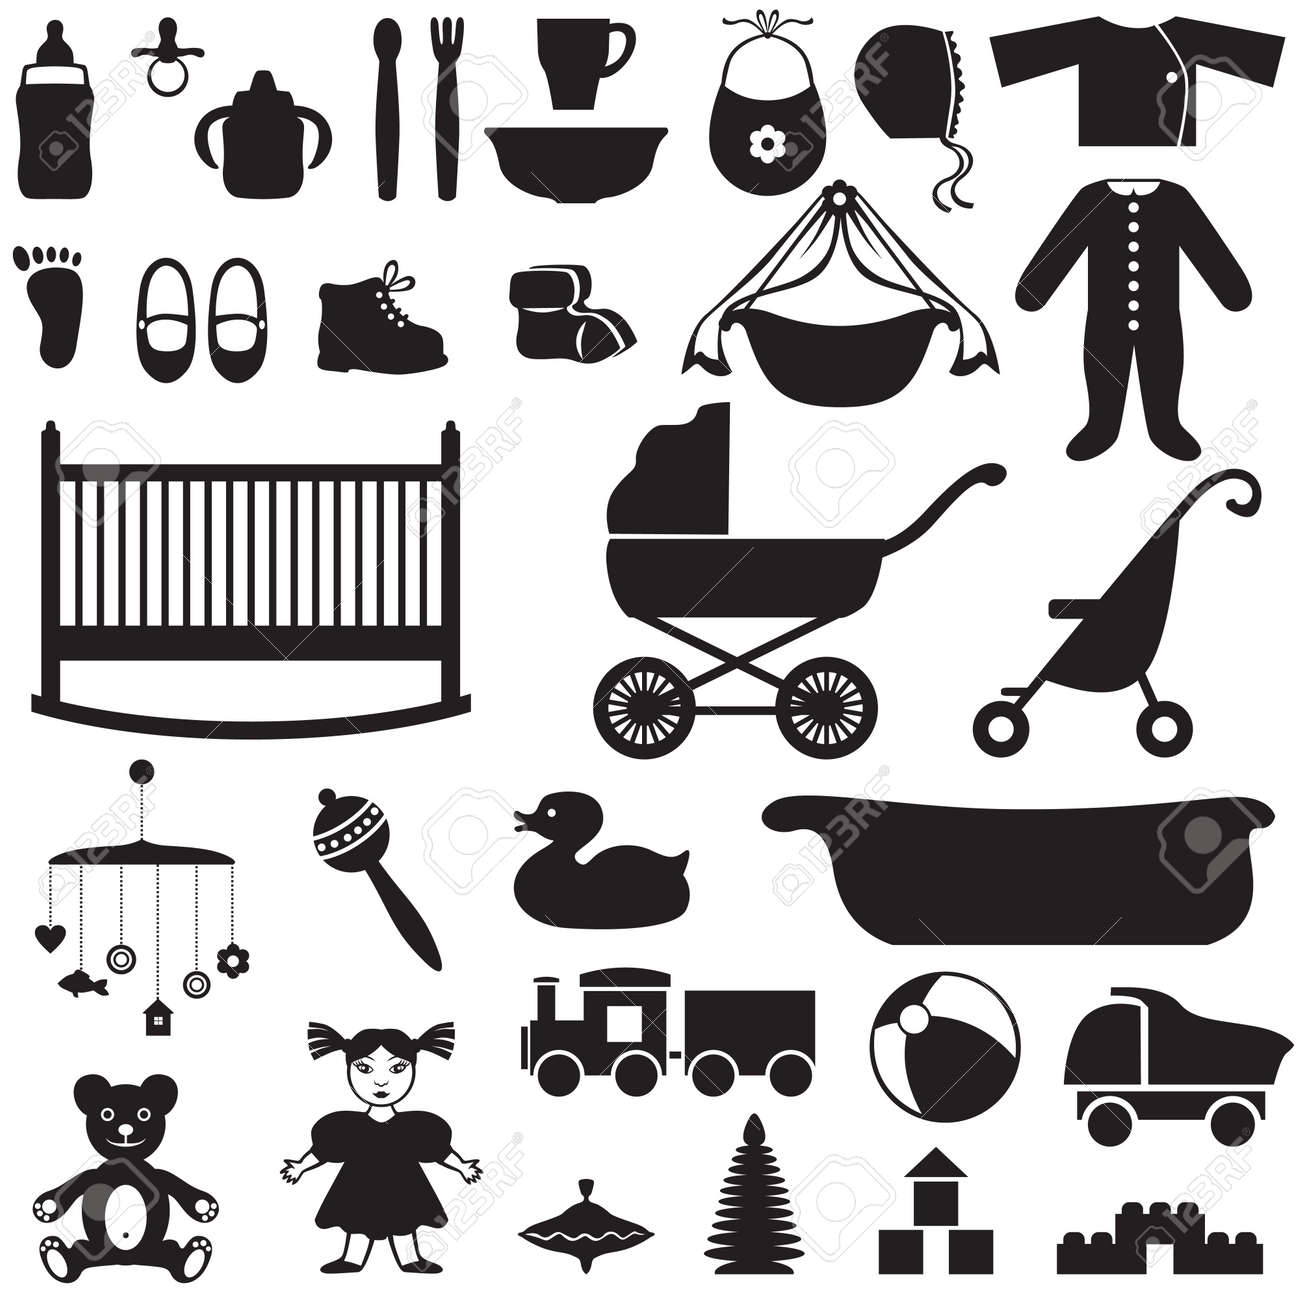 Set Of Silhouette Images Of Children S Things Royalty Free Cliparts